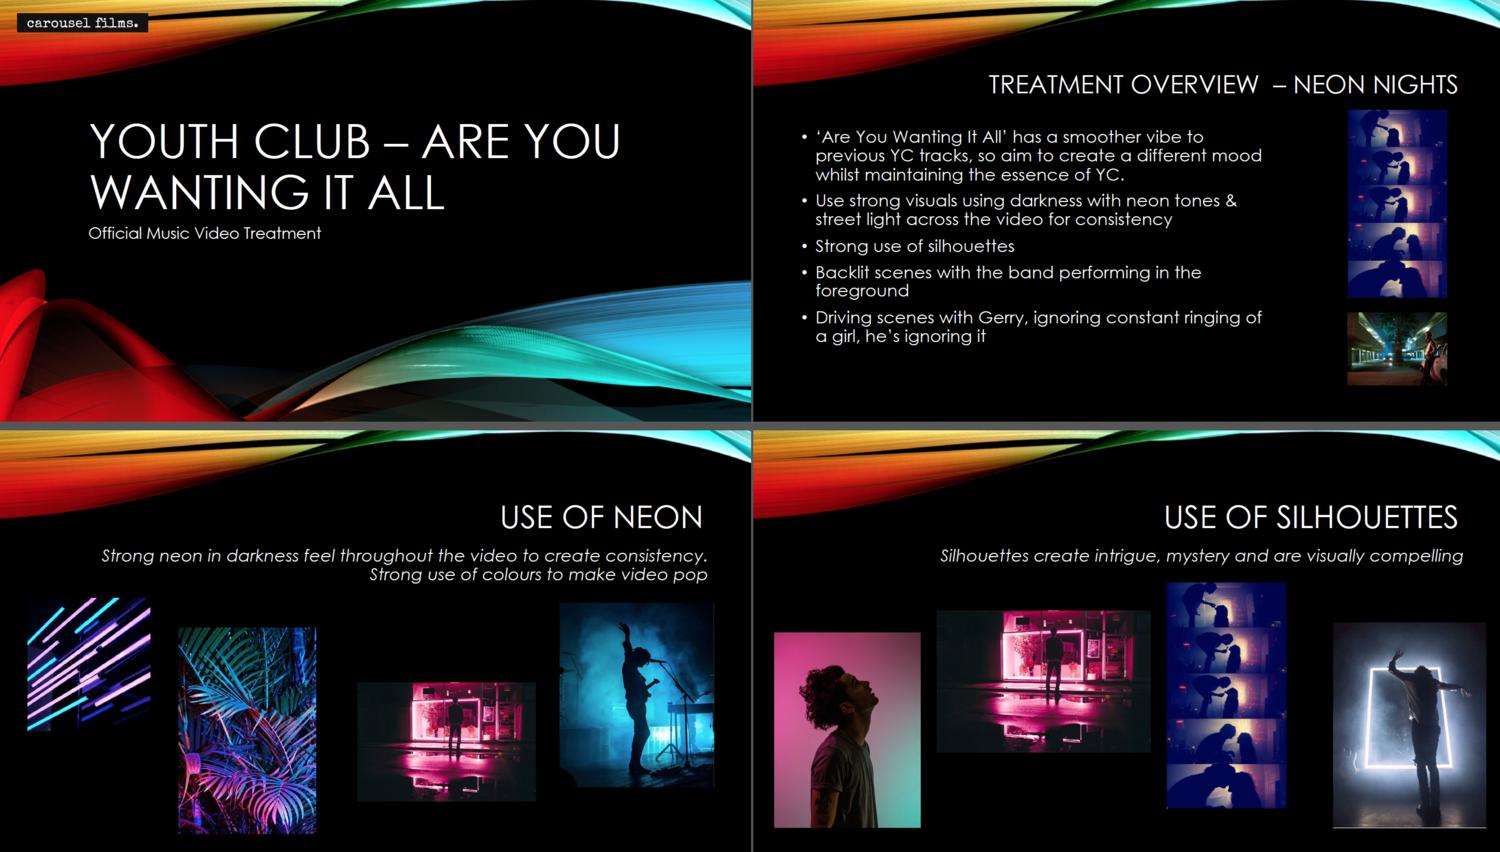 How to write treatment for a music video pitch fstoppers for Video treatment template